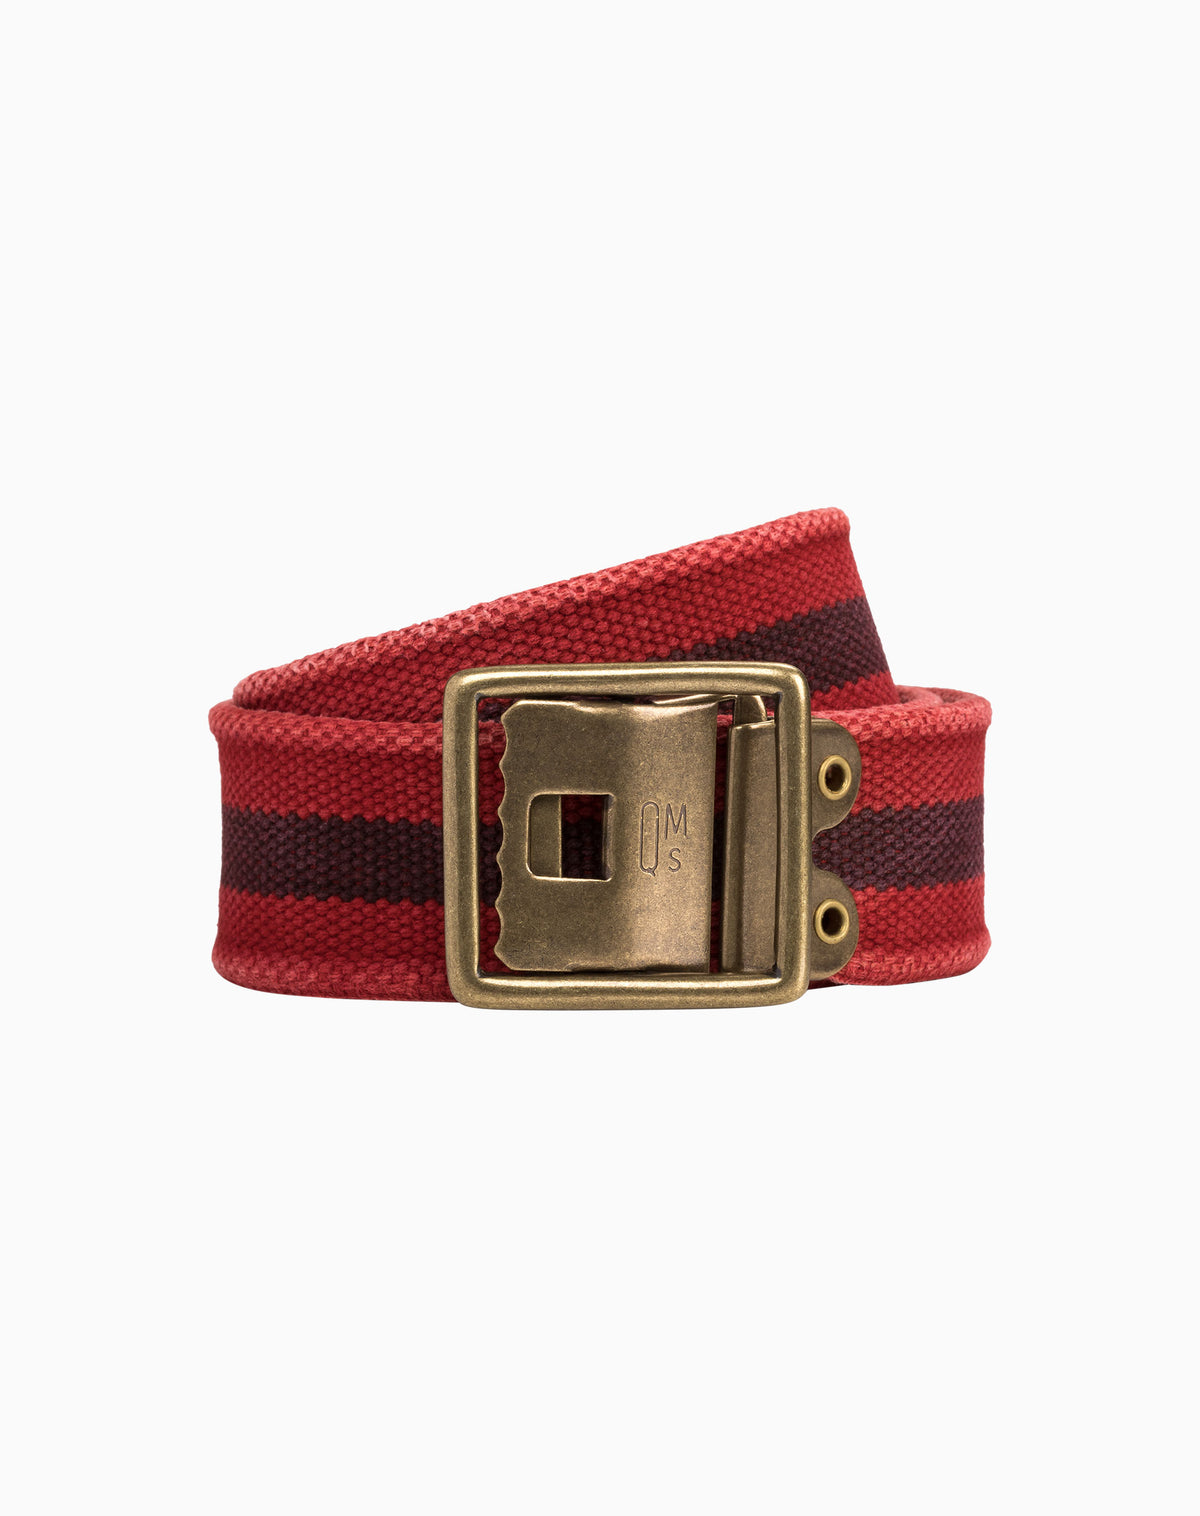 Military Belt in Red with Navy Stripe